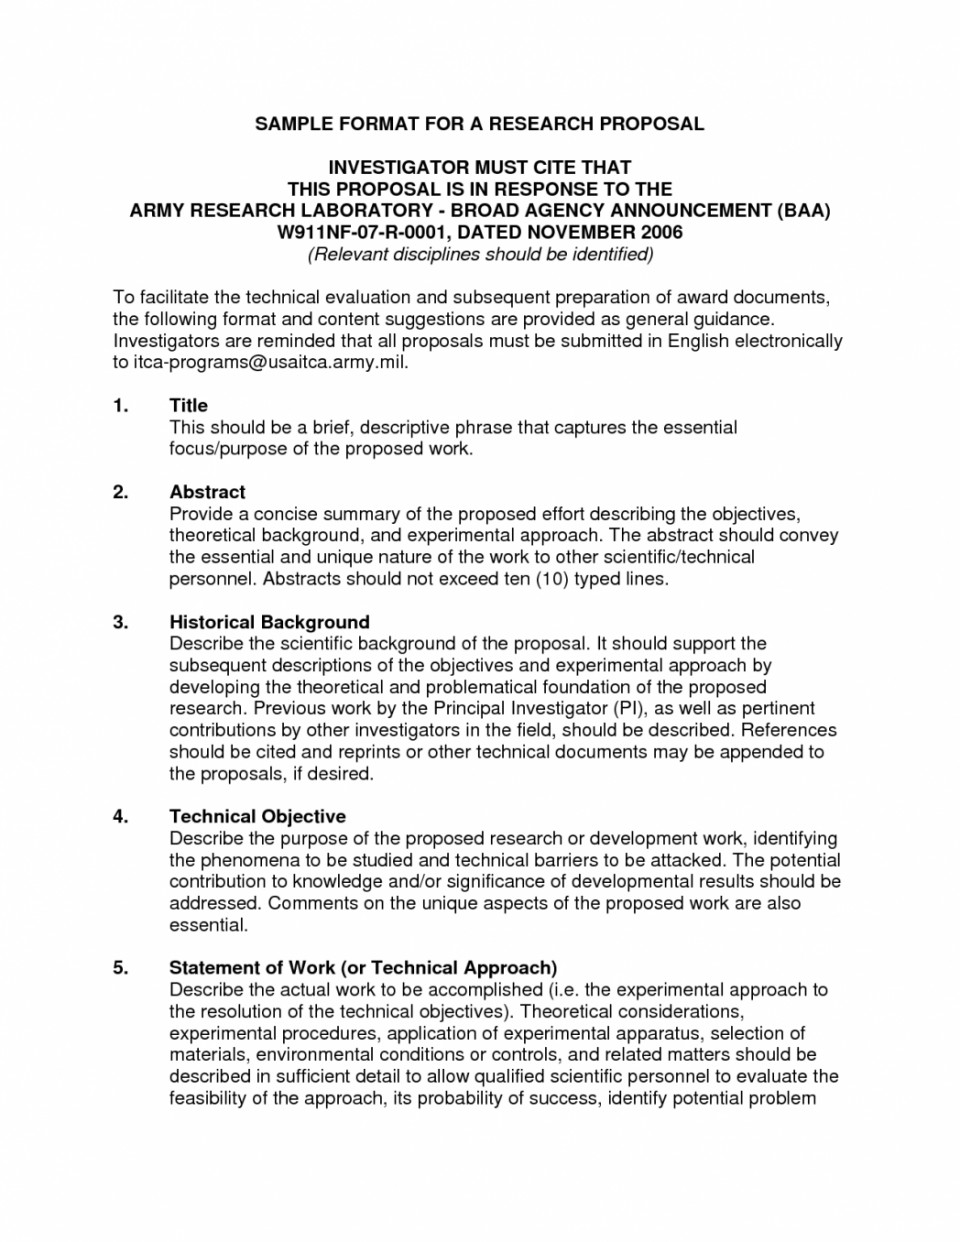 018 Evaluation Essay Outline For Example Of An Critical Research Proposal Template Qic Movie Layout Self Film Source Incredible Book Samples On Movies Format 960